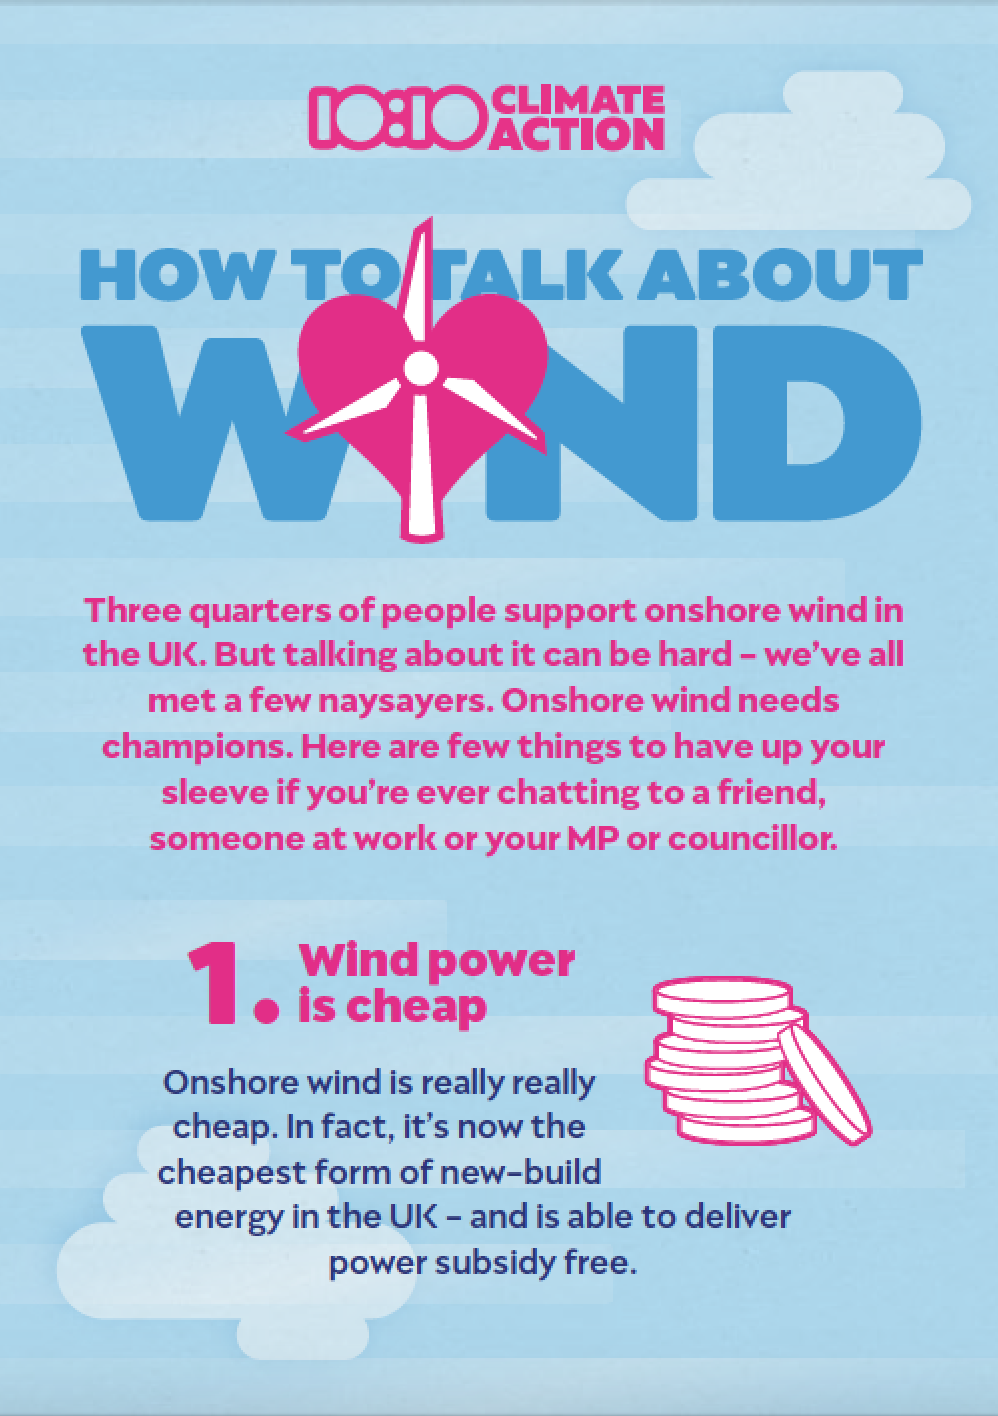 How to talk about wind with your friends